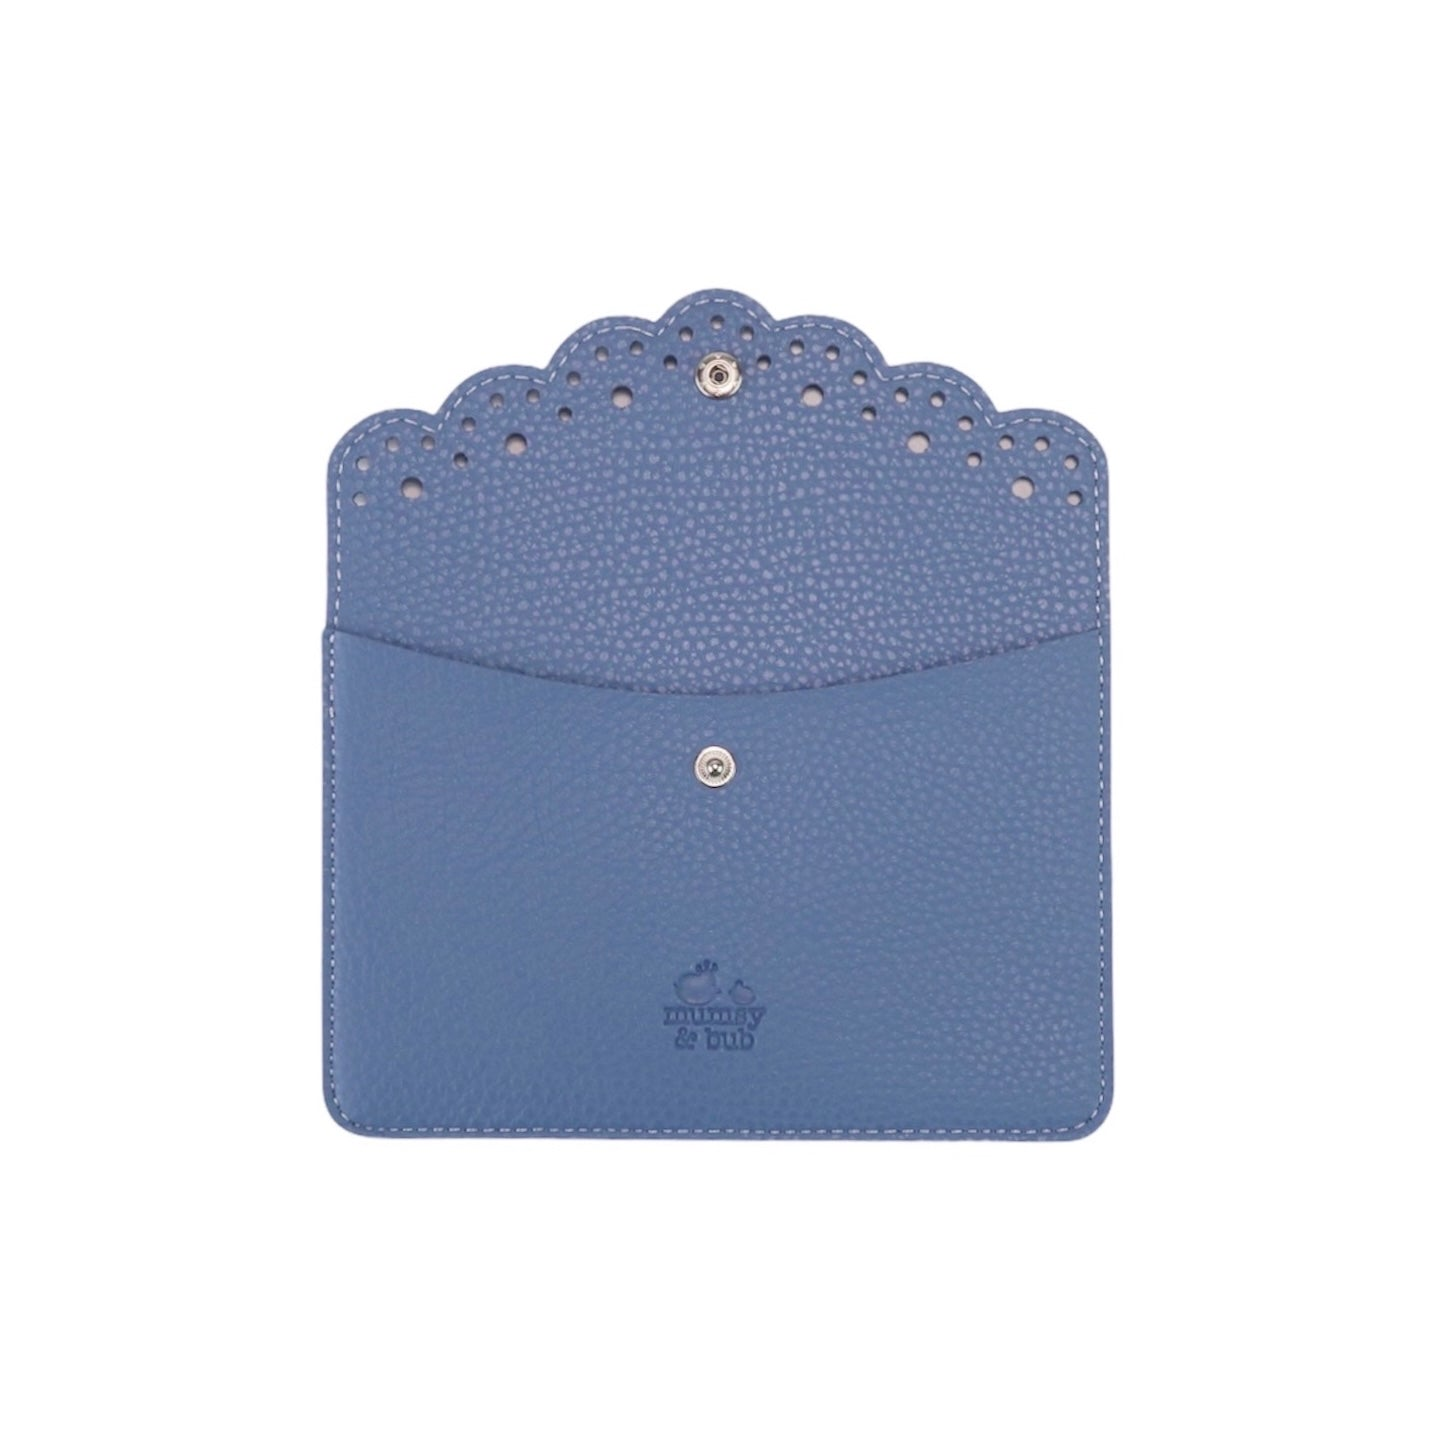 B6 Bella Wallet Insert - Moonbeam